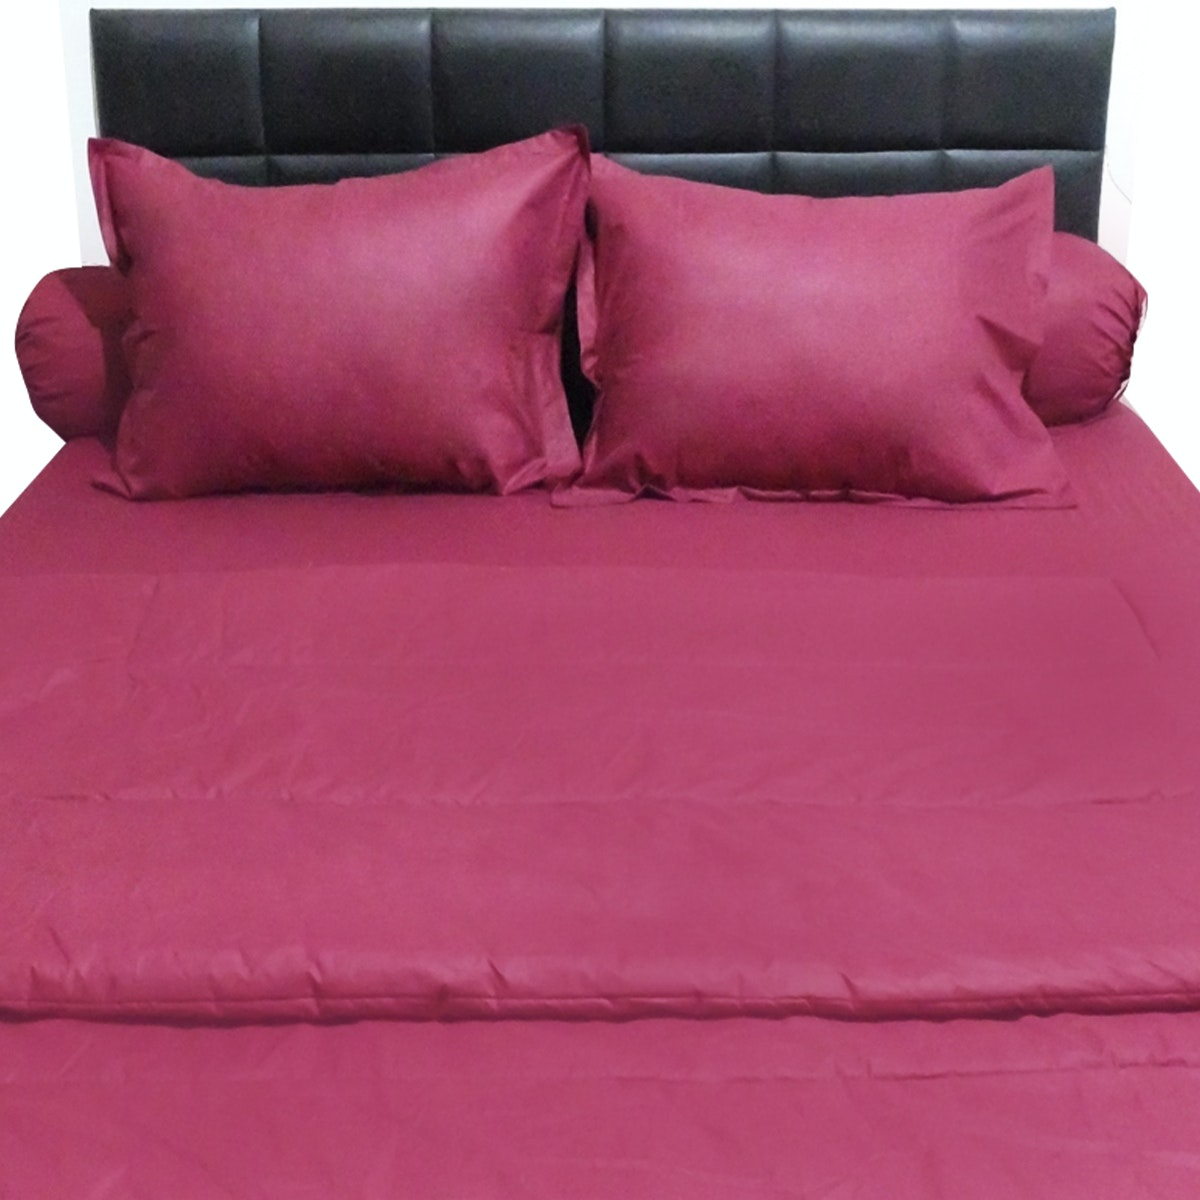 Sleep Buddy Set Sprei dan Bed Cover Plain Maroon CVC 200x200x30